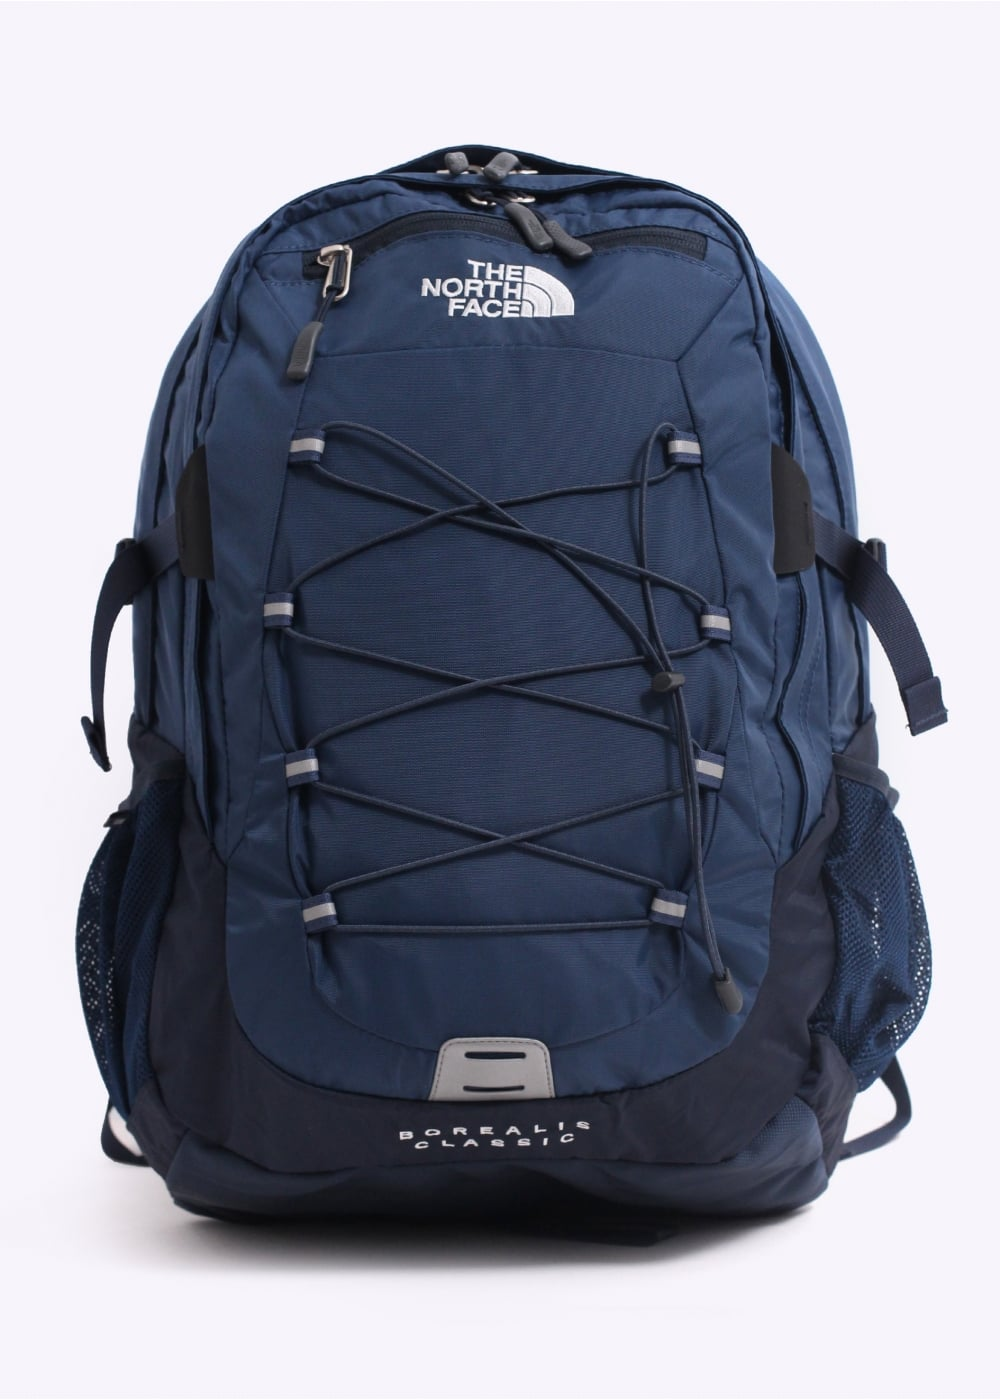 groothandel outlet enorme selectie van tinten van The North Face Borealis Classic Backpack - Shady Blue